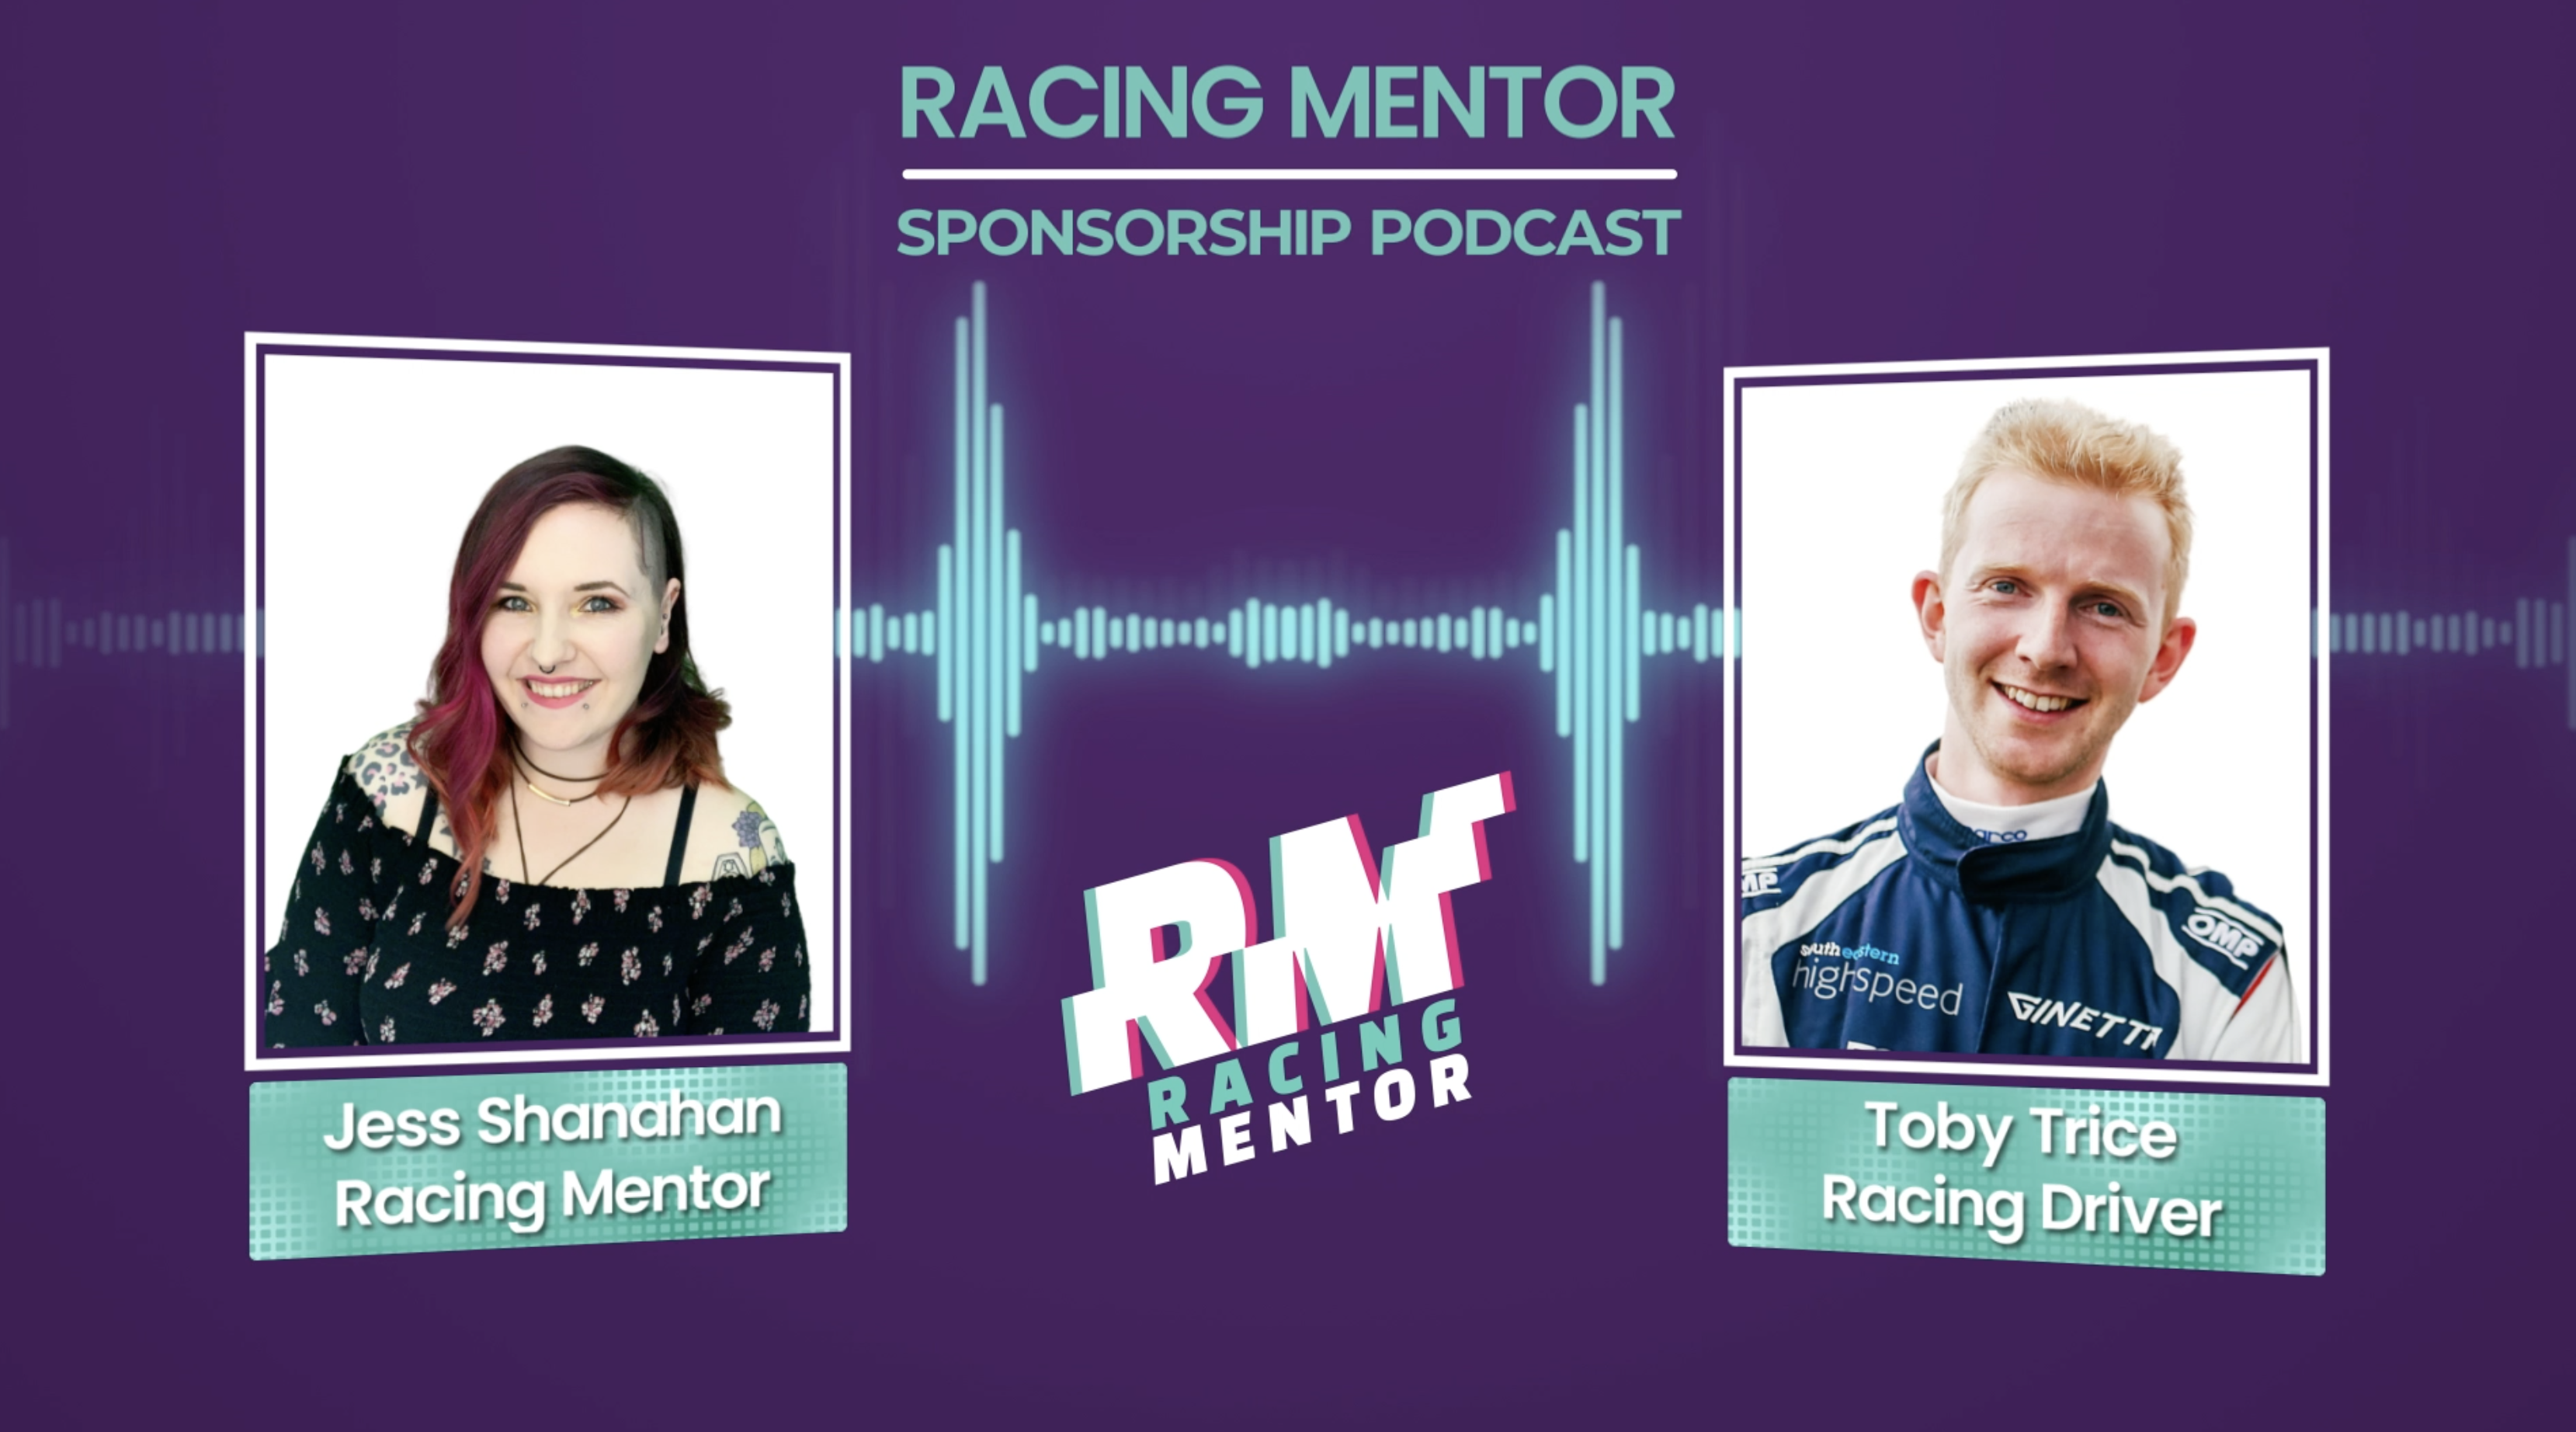 CO HOSTING THE RACING MENTOR PODCAST